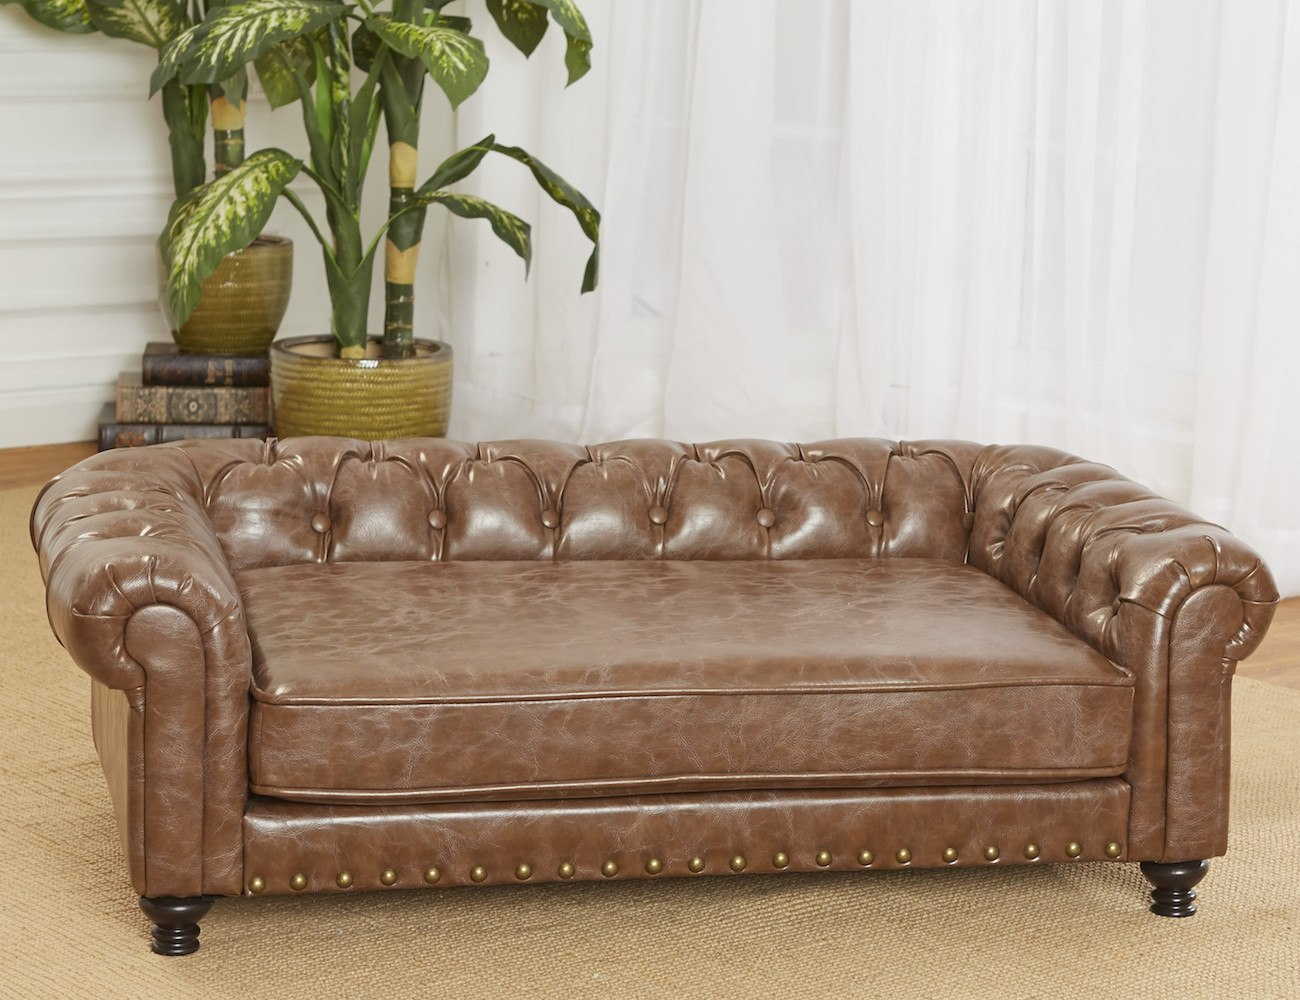 Clean Sofa Dog Smell.html. Do It Yourself Danielle Our Poor ...